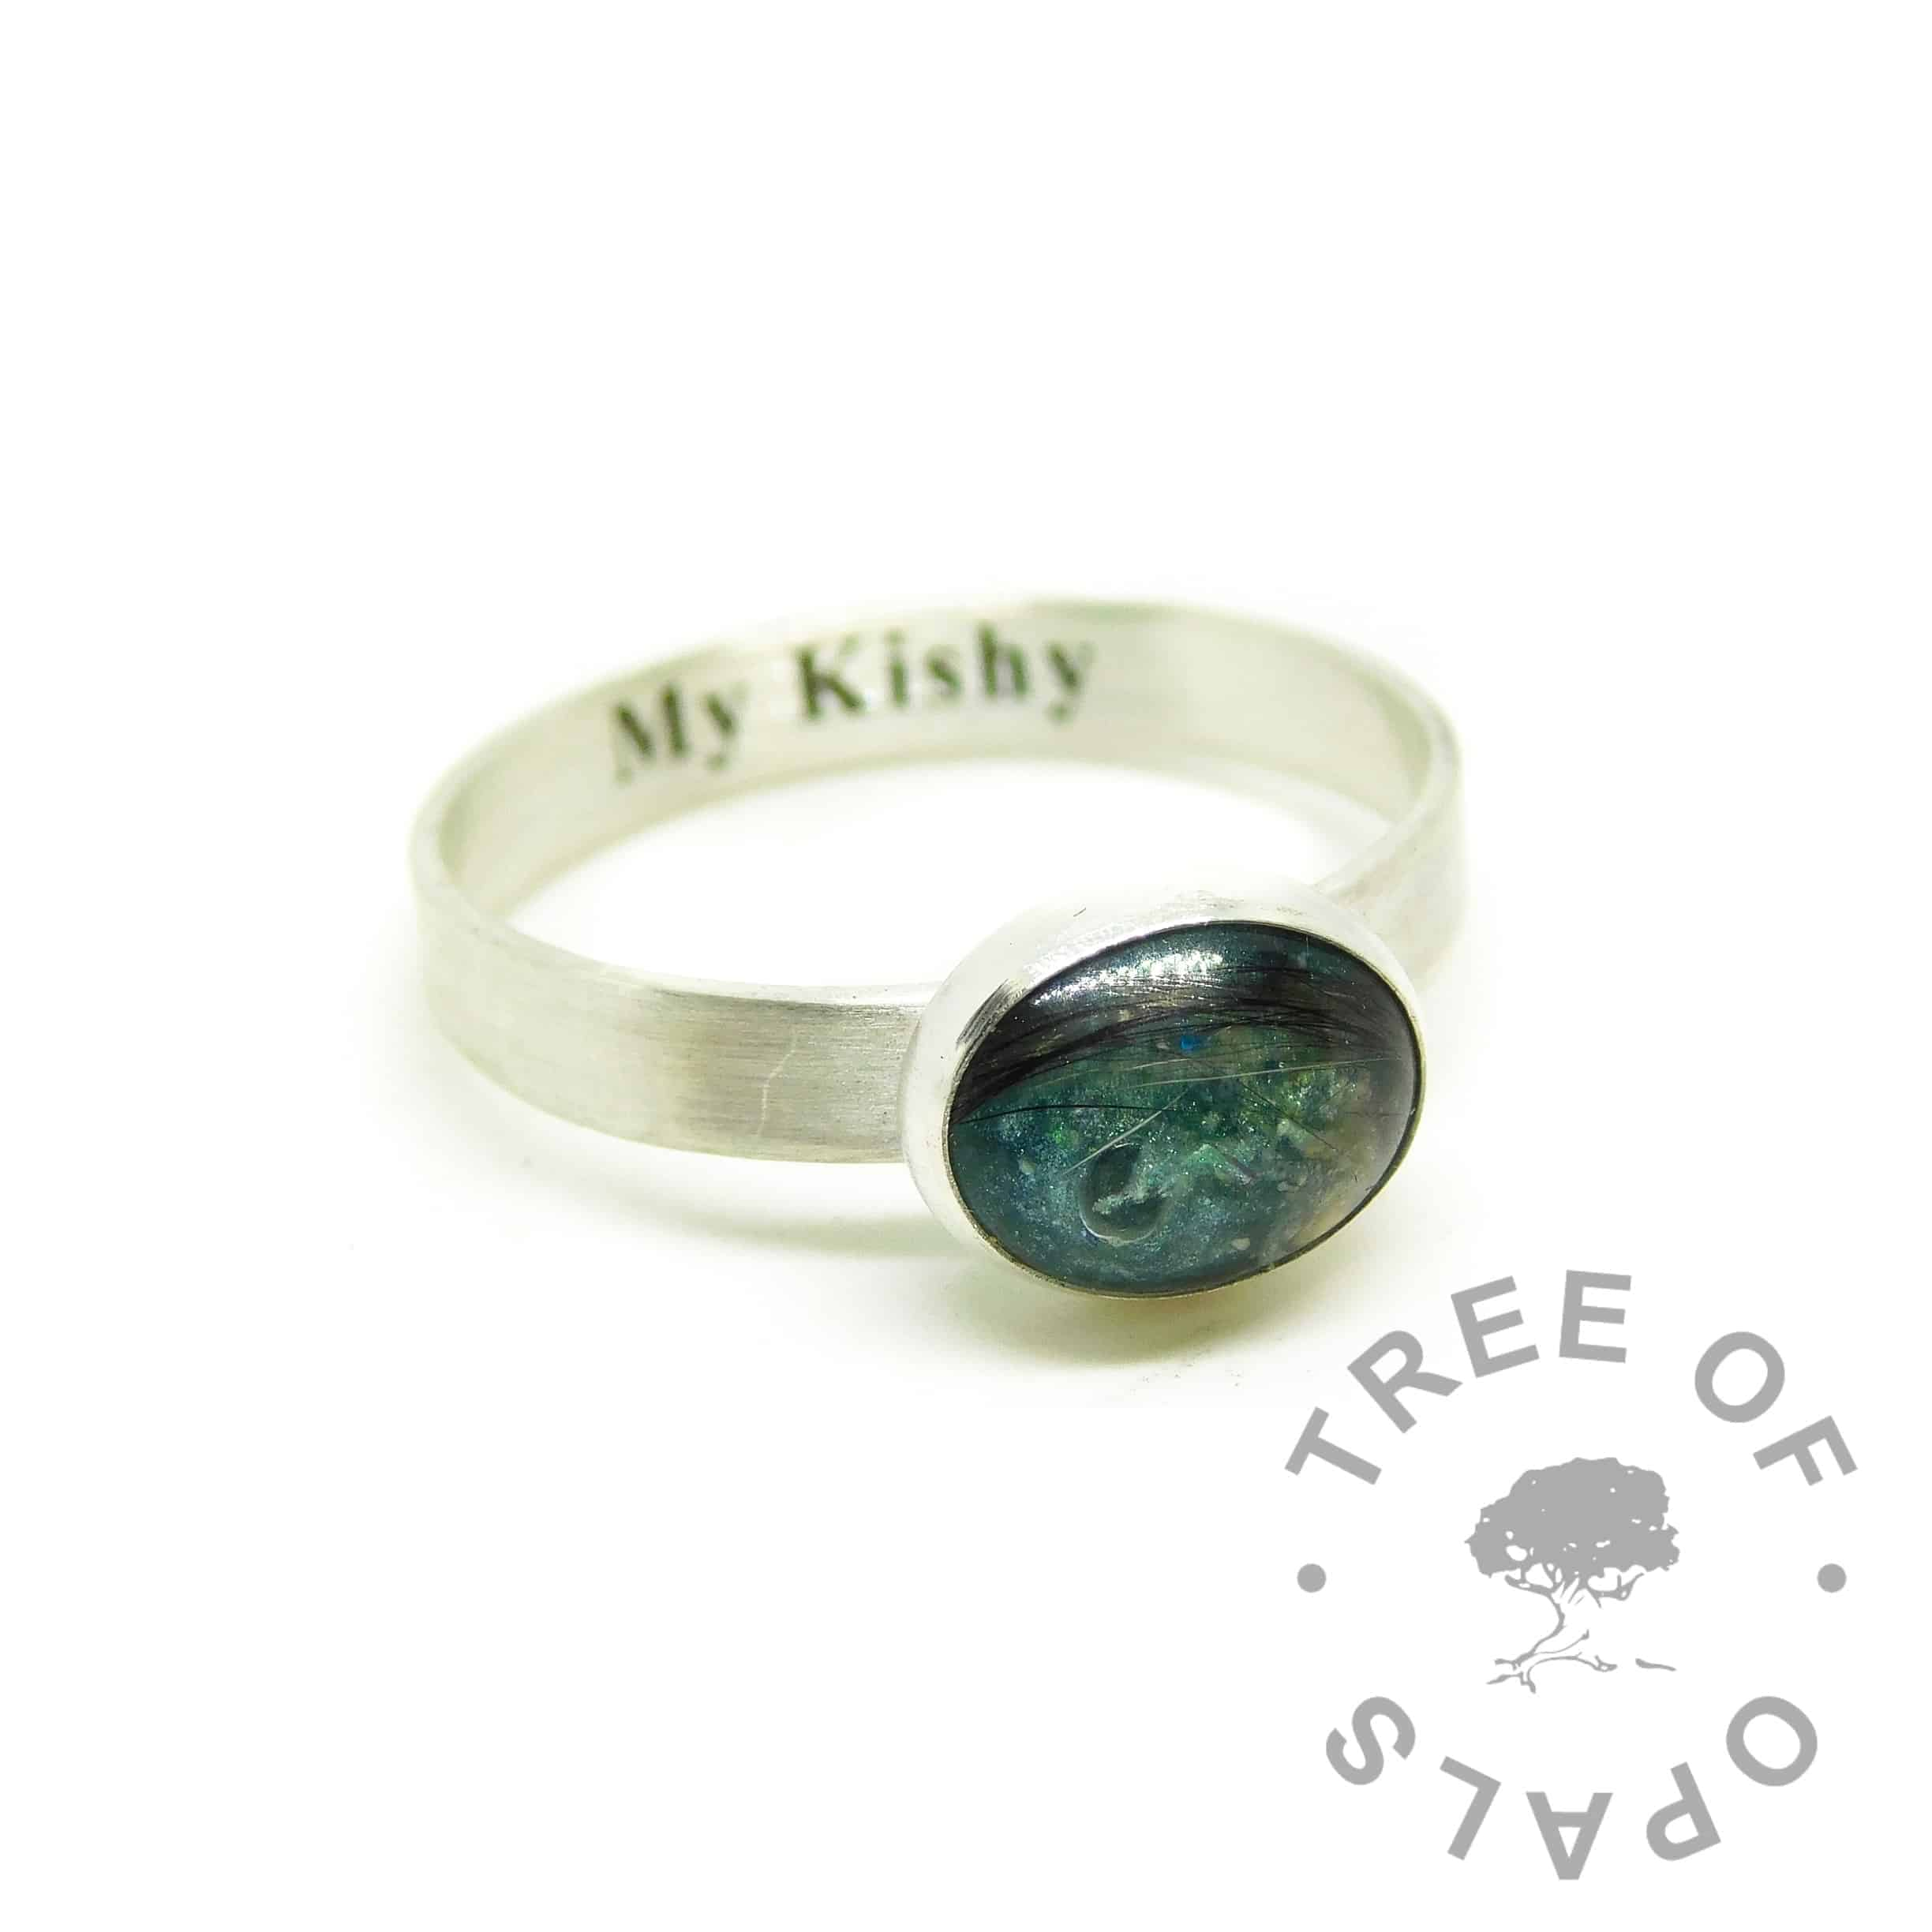 teal engraved fur ring, engraved with Times New Roman font on the inside of the band. Brushed band, mermaid teal resin sparkle mix